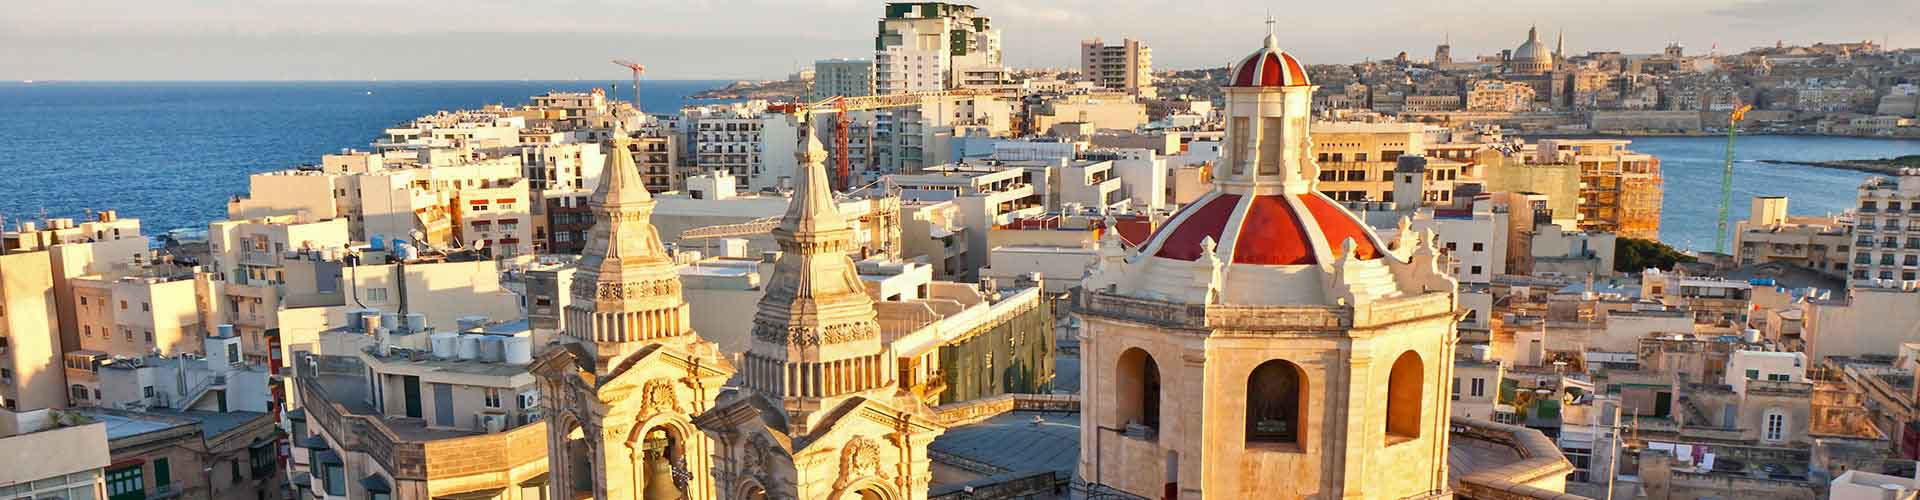 Sliema – Student accommodations, hostels and coworking spaces in Sliema (Malta). Maps of Sliema, photos and reviews for each place in Sliema.